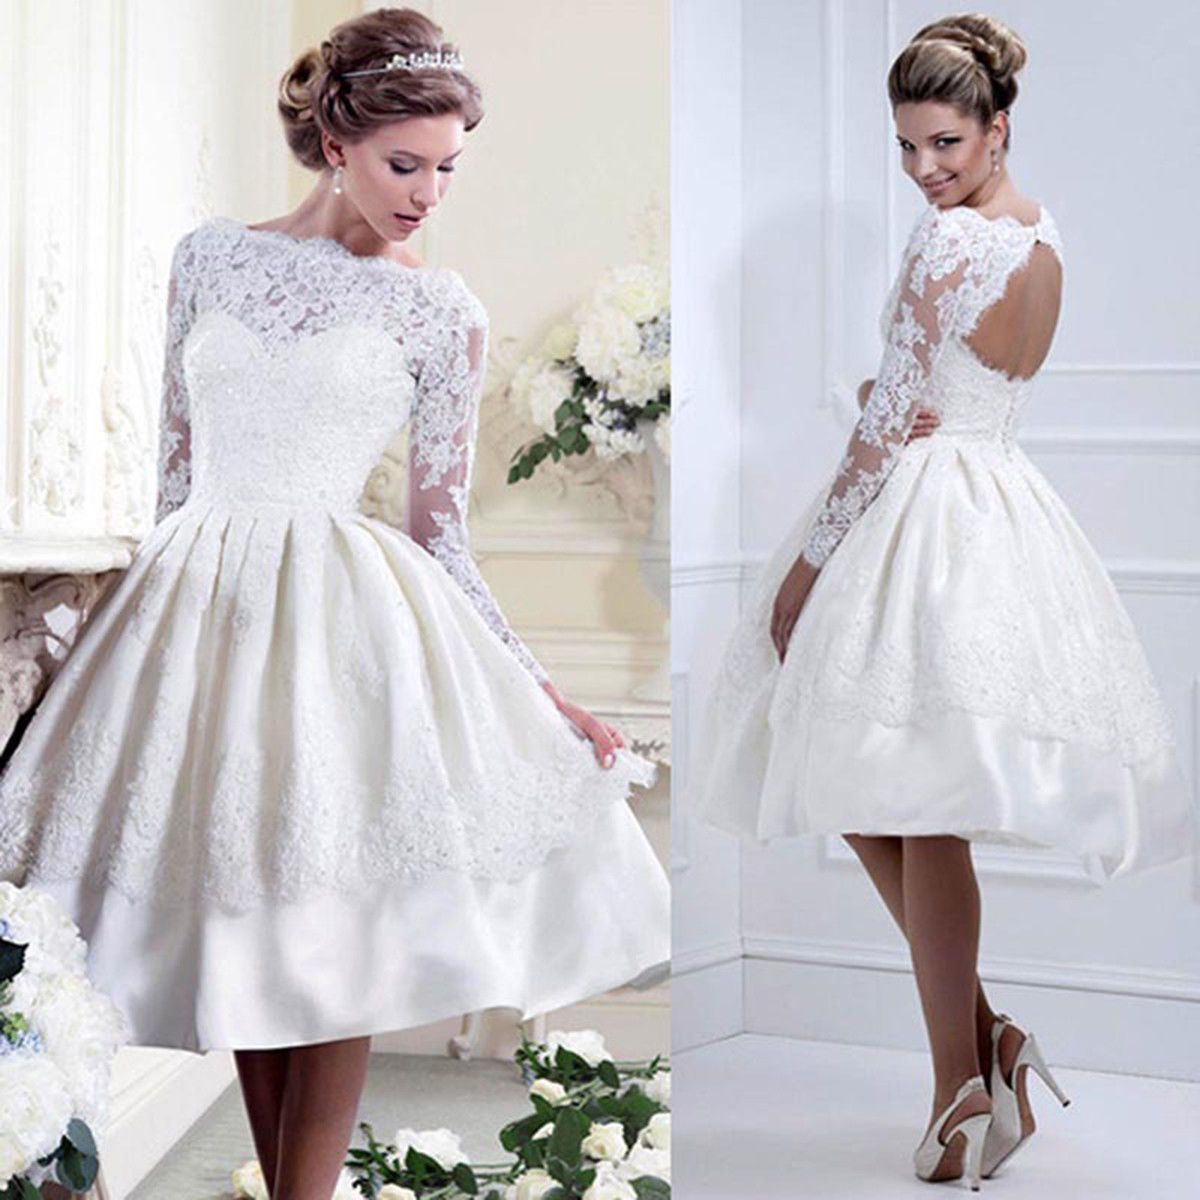 Dress for wedding evening party  Women Backless Lace Dress Prom Evening Party Cocktail Bridesmaid